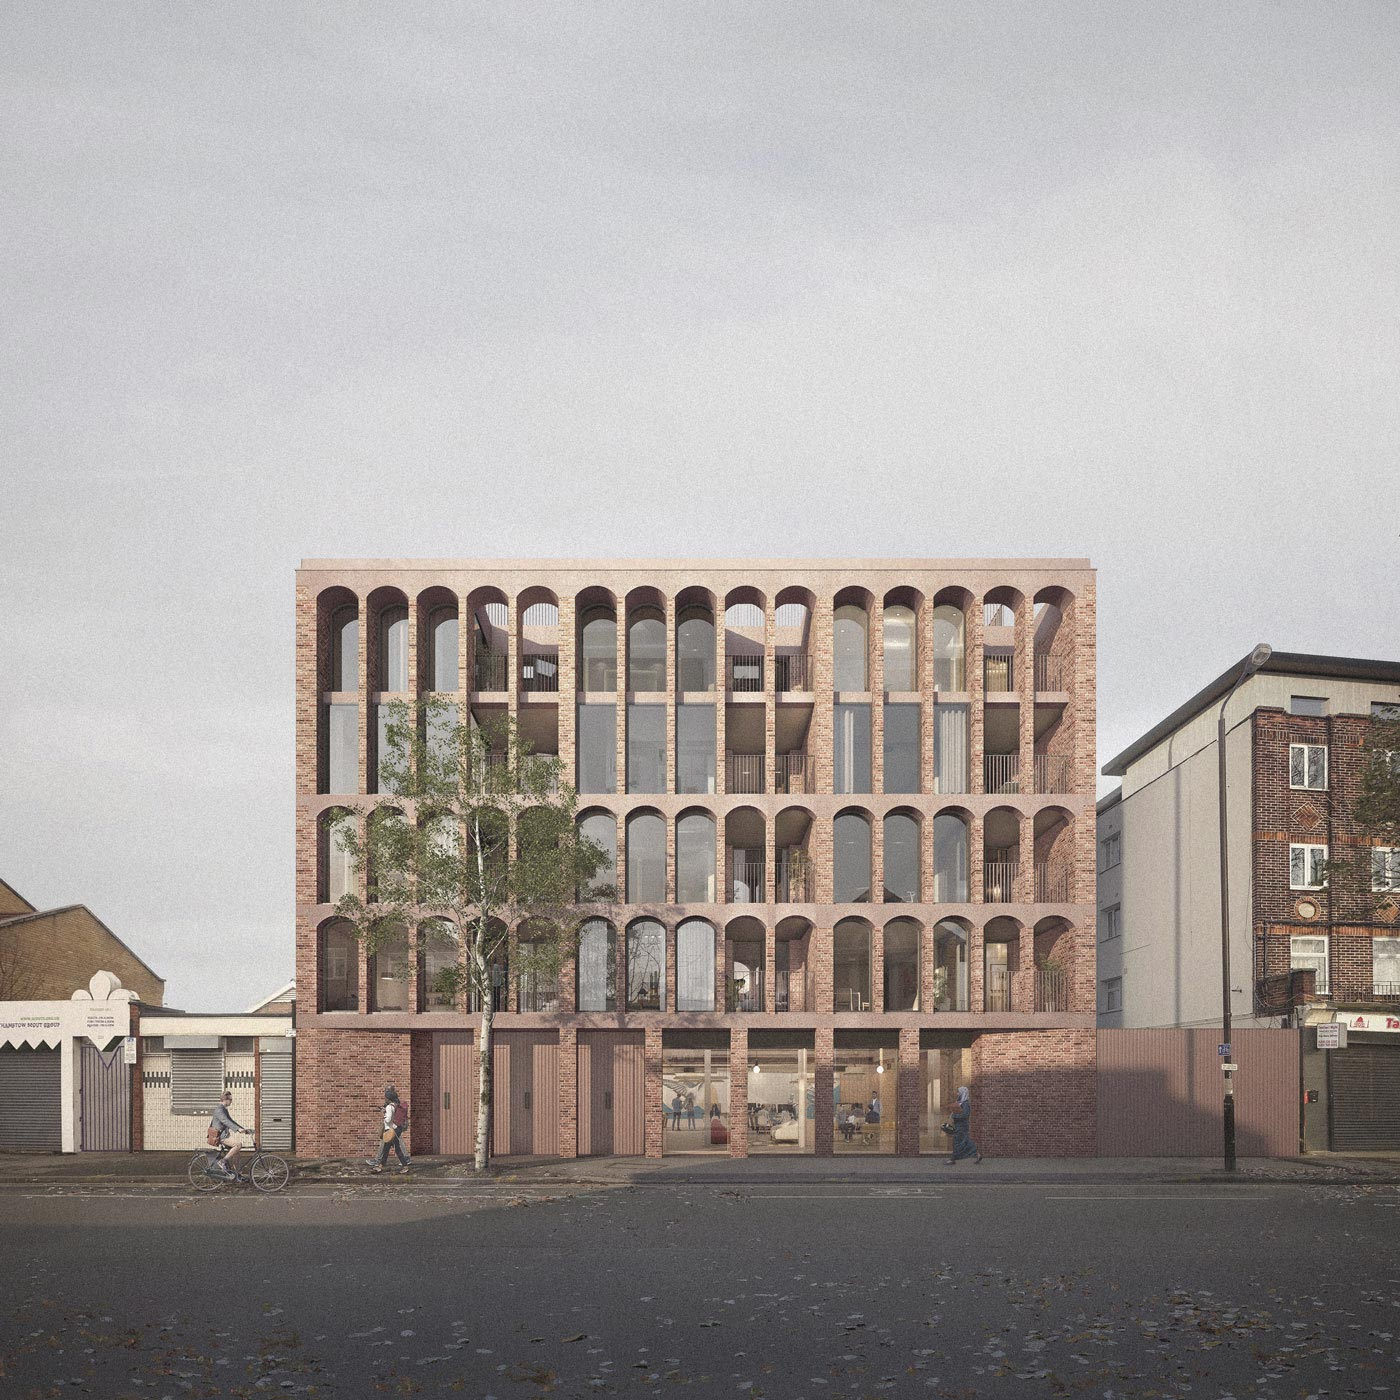 Architect designed Walthamstow Housing, Architecture for London